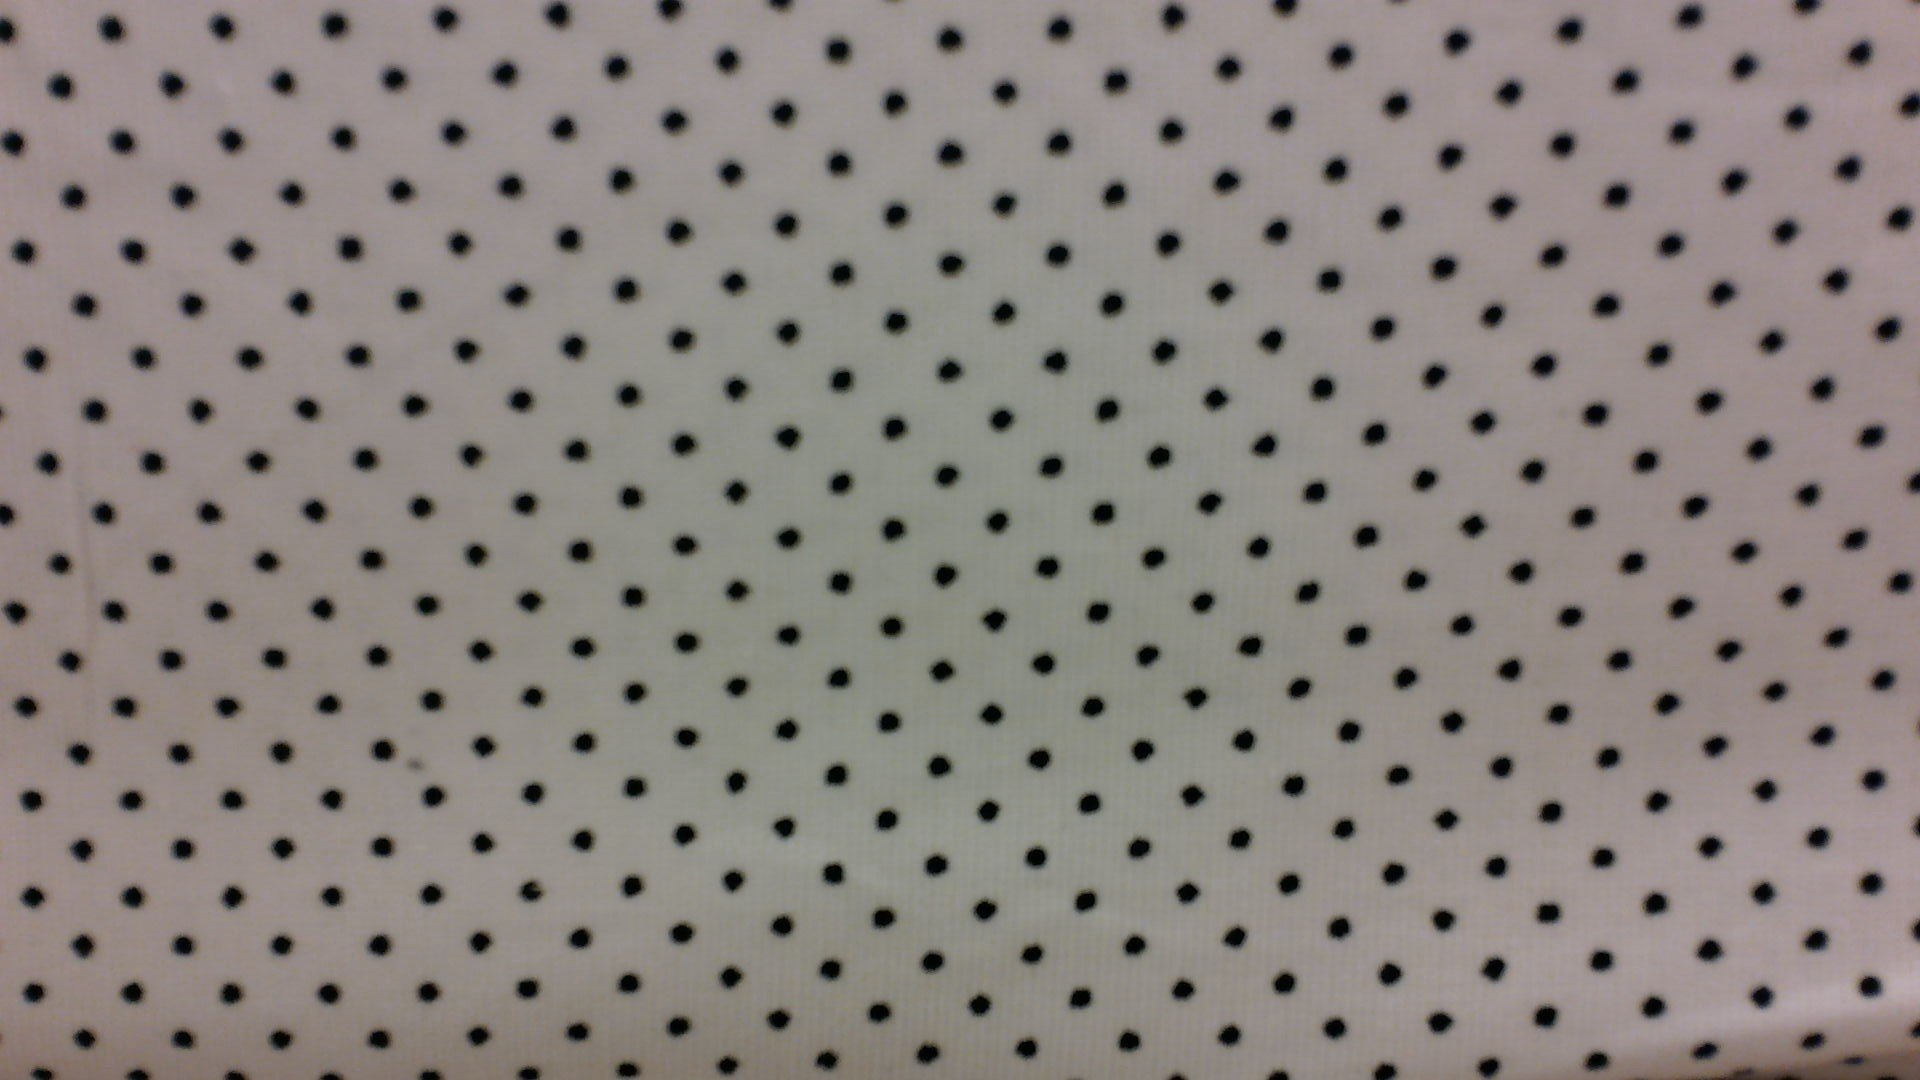 Corduroy #4 -  White with Black Dots